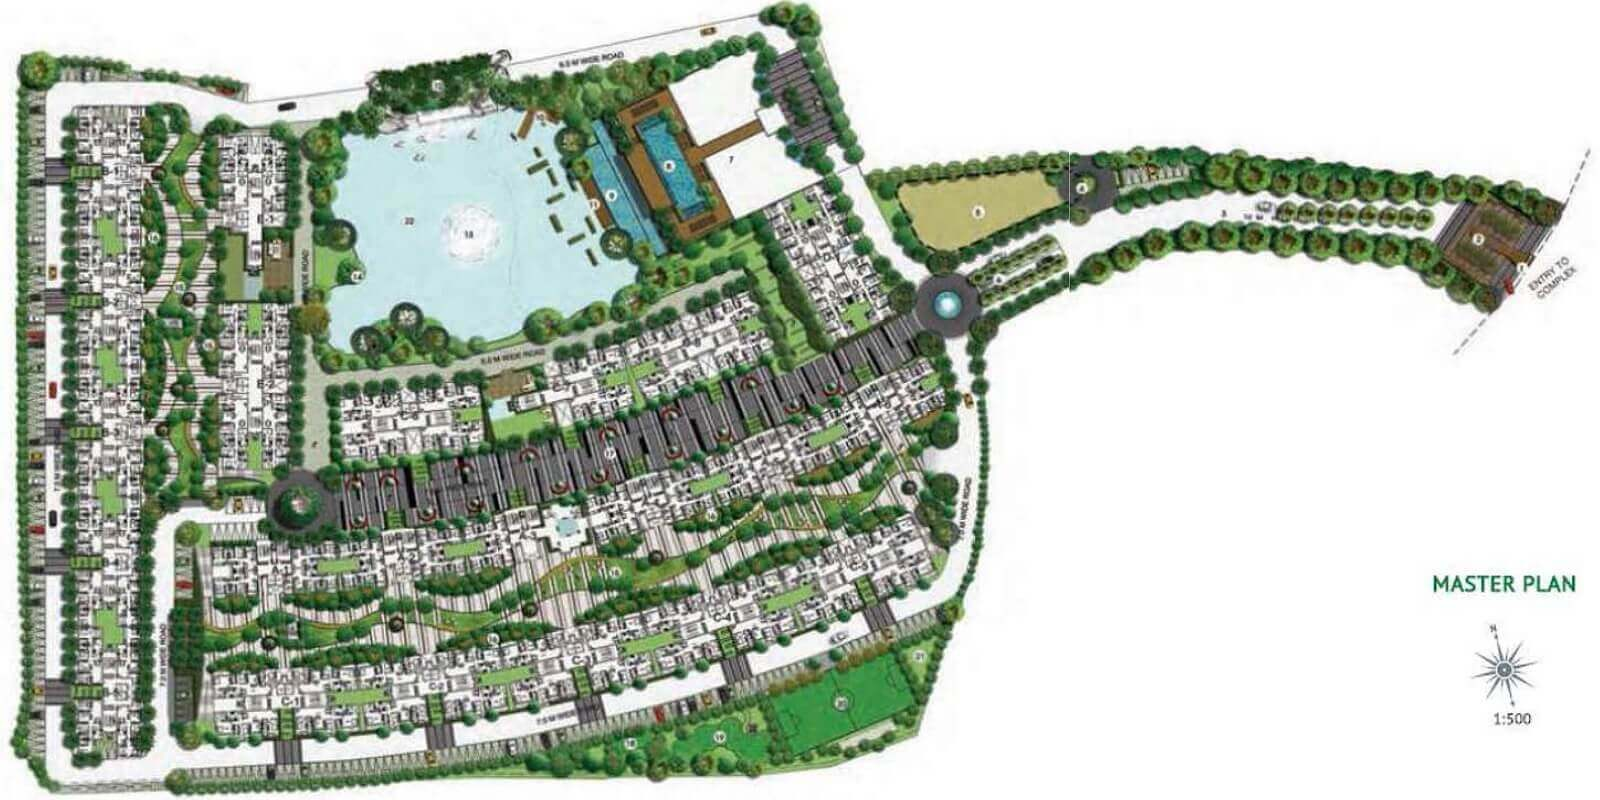 emami city master plan image1